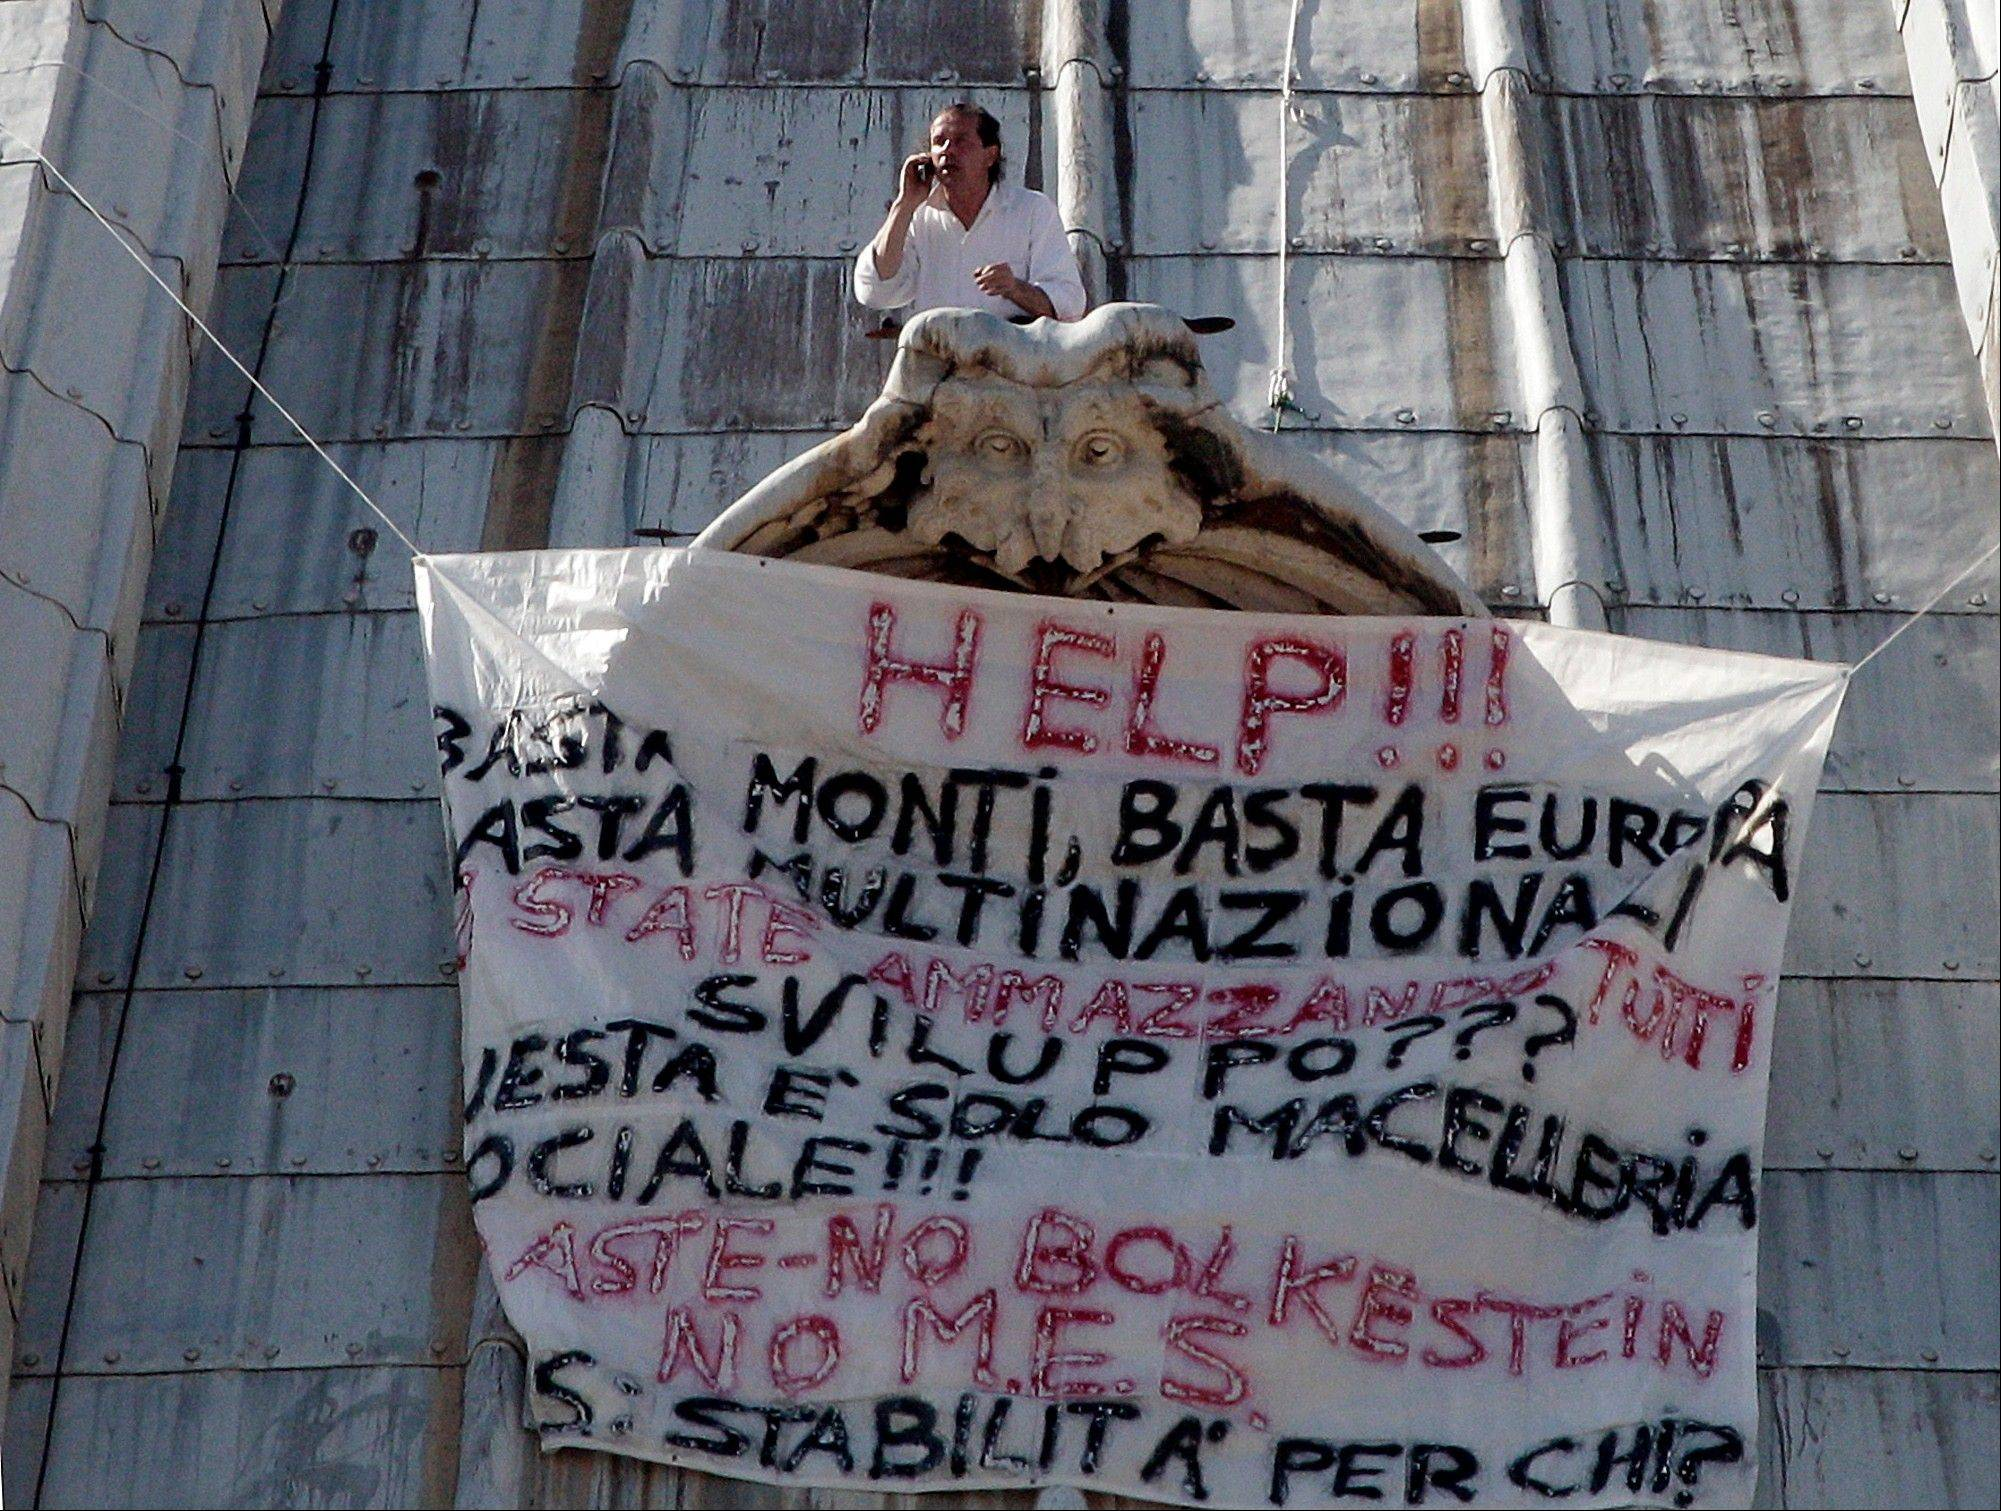 "Italian businessman Marcello di Finizio gave up his protest atop the St. Peter's Basilica on Wednesday evening, after more than 24 hours perched on the 426-foot dome to demonstrate against government reforms. His banner in Italian reads:""Help!! Enough Monti (Italian Premier Mario Monti), enough Europe, enough multinationals, you are killing all of us. Development?? This is a social butchery!!"""